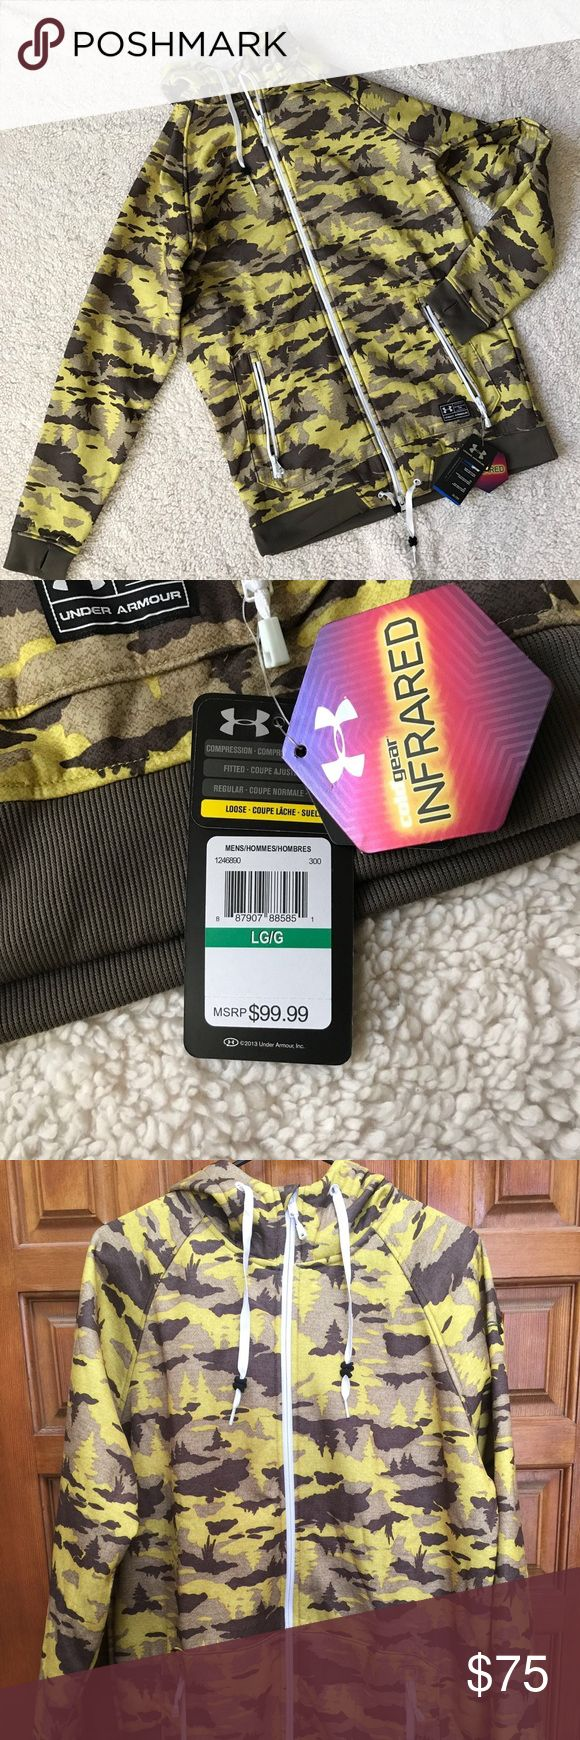 🎉SALE🎉 HUNTERS UNDER ARMOUR COLD GEAR INFRARED Men's size Large CAMMO Hunting Full Zip Under Armour Cold Gear Infrared Jacket/Hoodie!  Smoke free pet free home.  Ships in 24hrs with tracking number!  Cross Posted! Under Armour Jackets & Coats